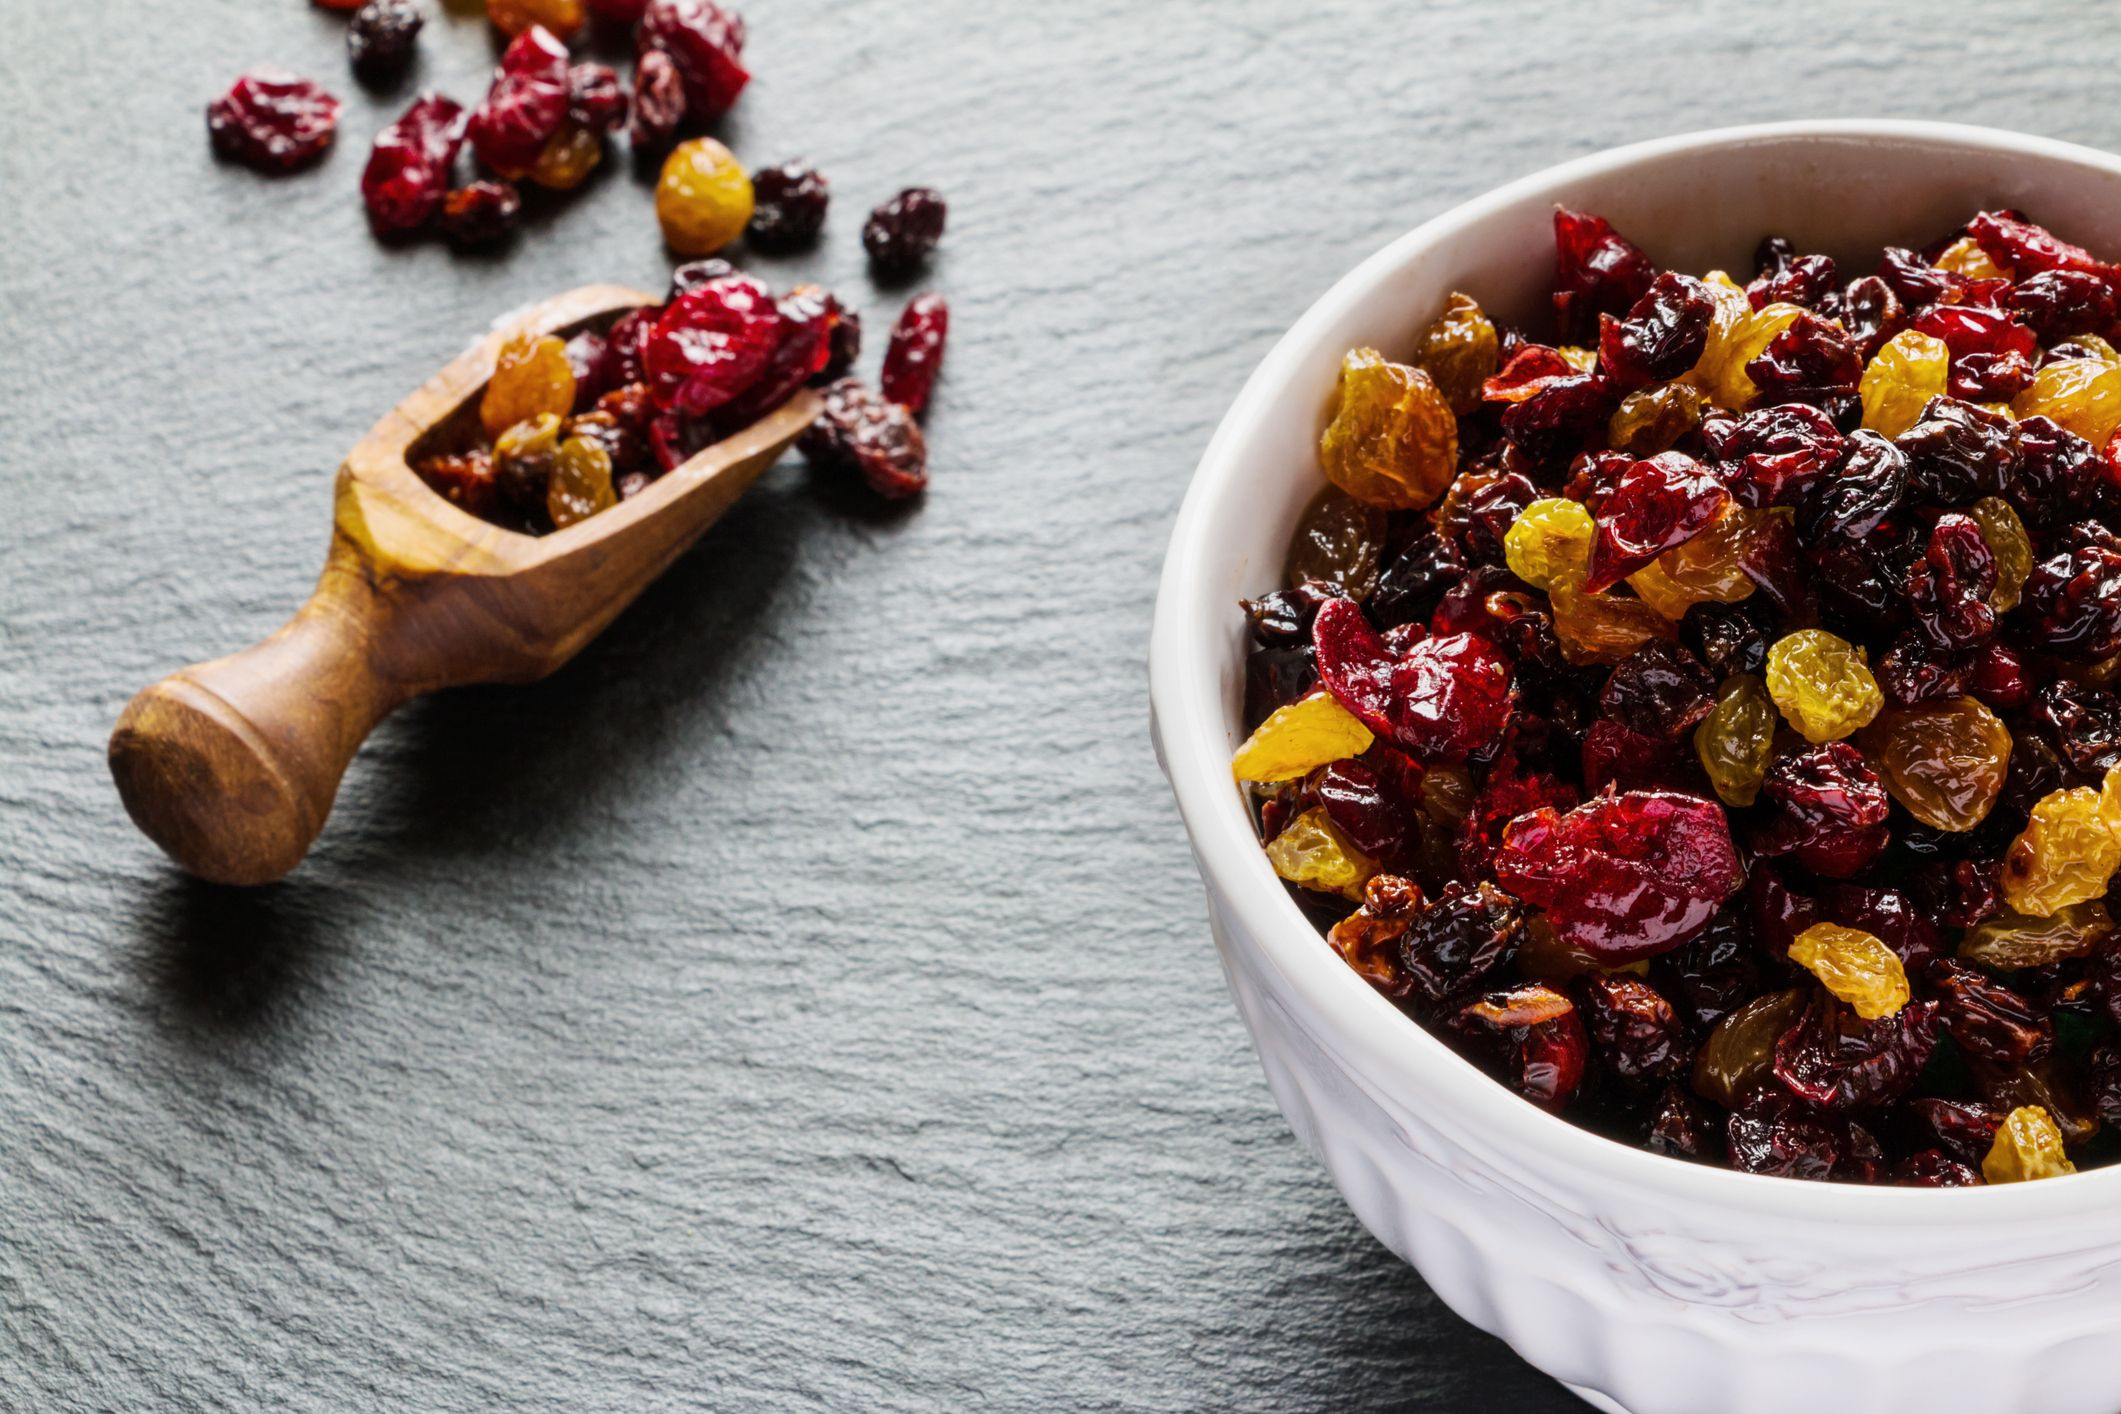 what's healthier: raisins or dried cranberries?